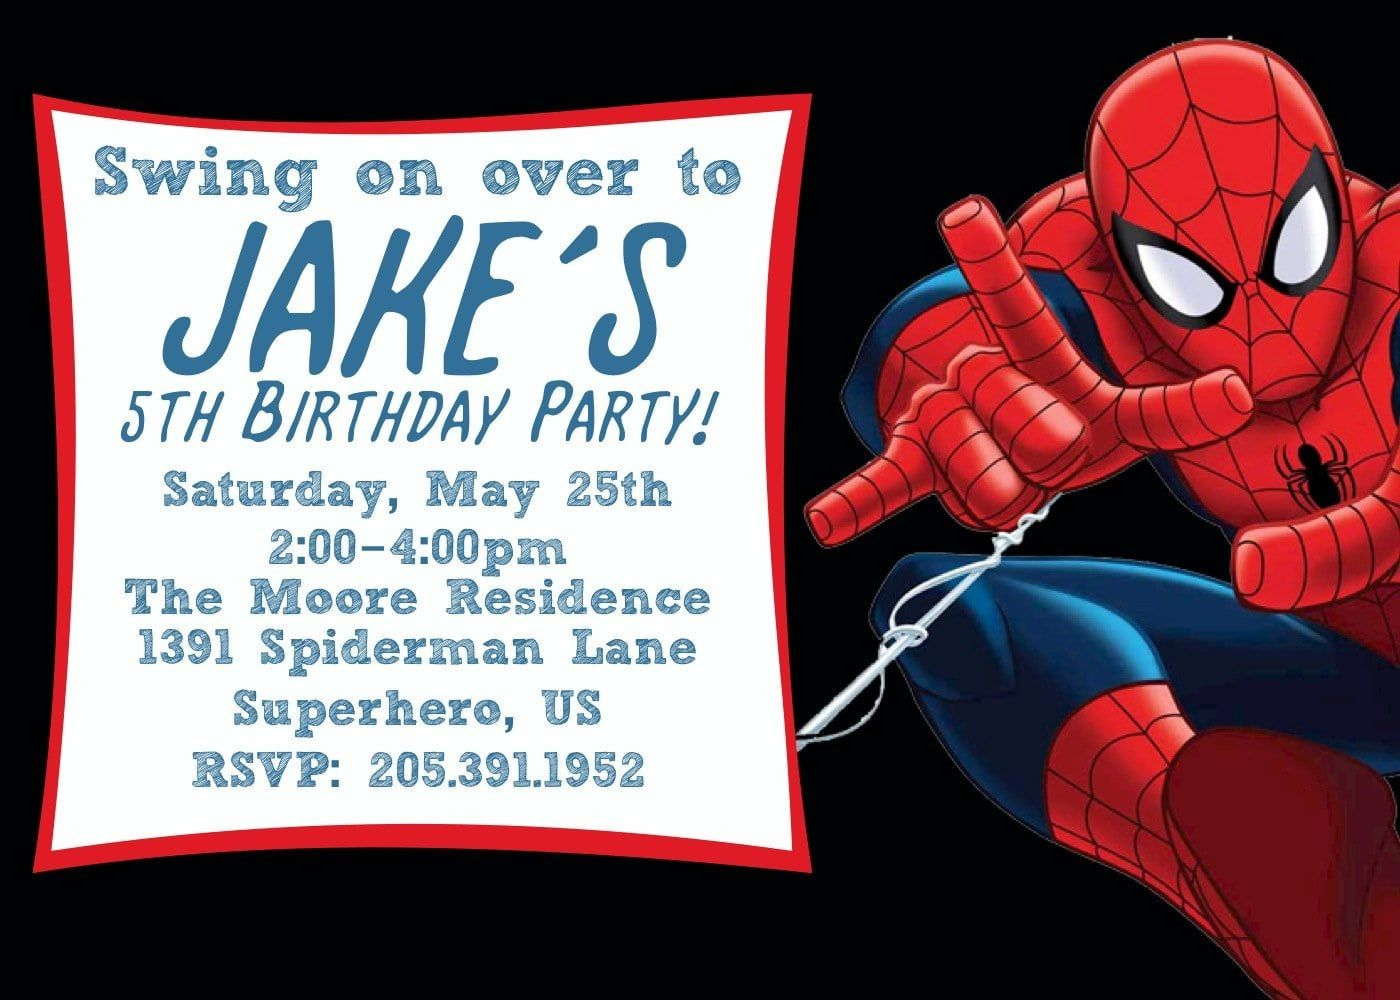 Free Printable Spiderman Birthday Invitation Templates Spiderman Birthday Invitations Printable Birthday Invitations Spiderman Birthday Party Invitations